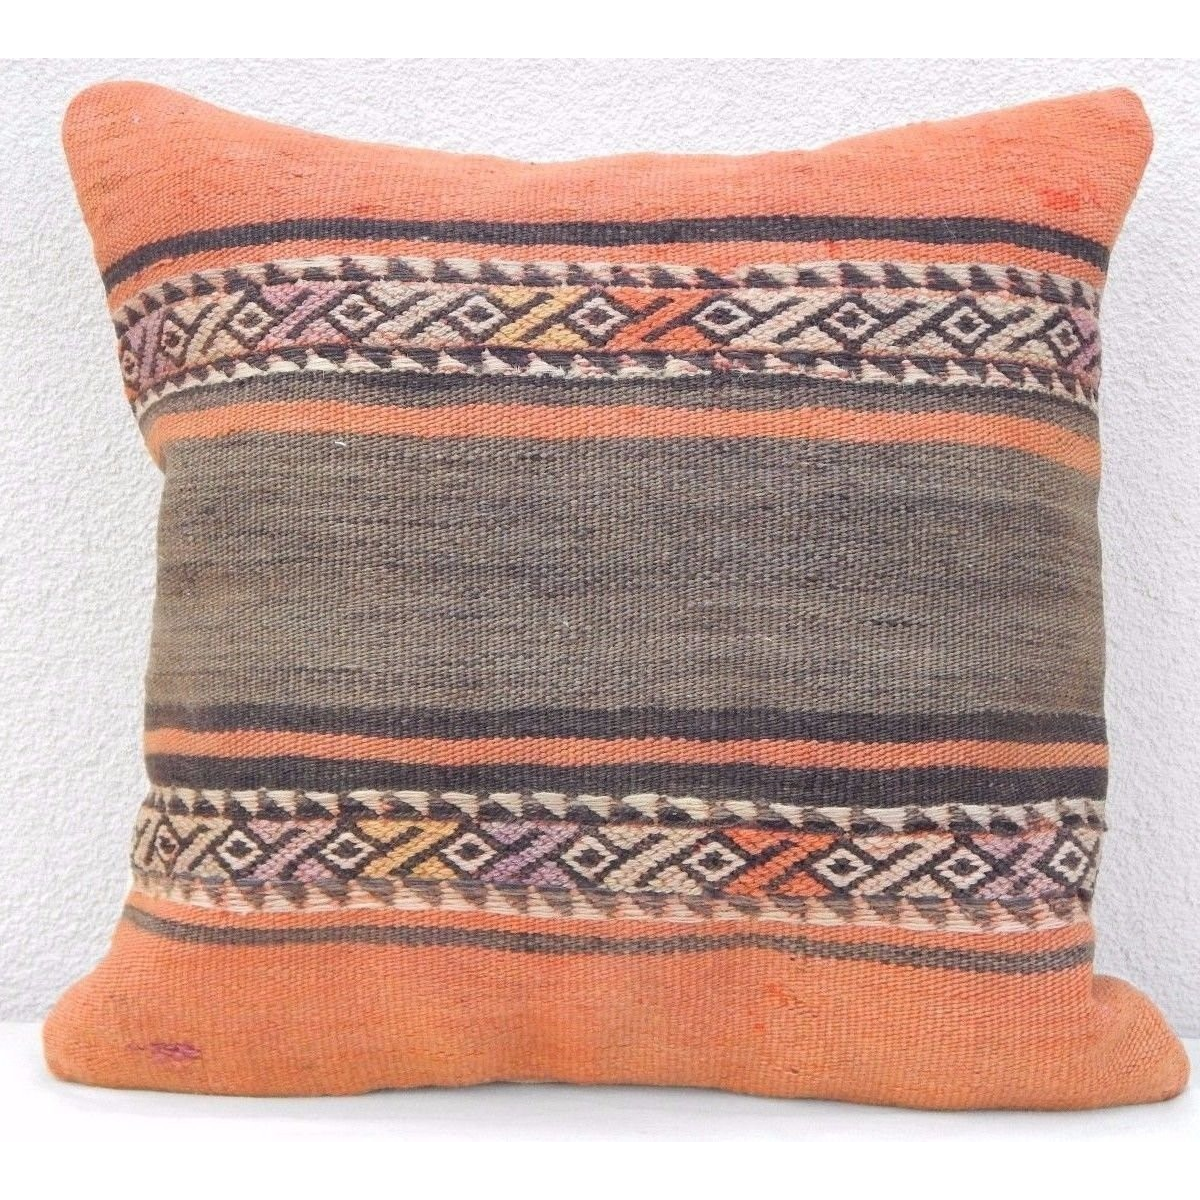 20x20 Vintage Handmade Pale Orange Rug Pillow Cover Rustic Accent Kilim Cushion Floorcushion